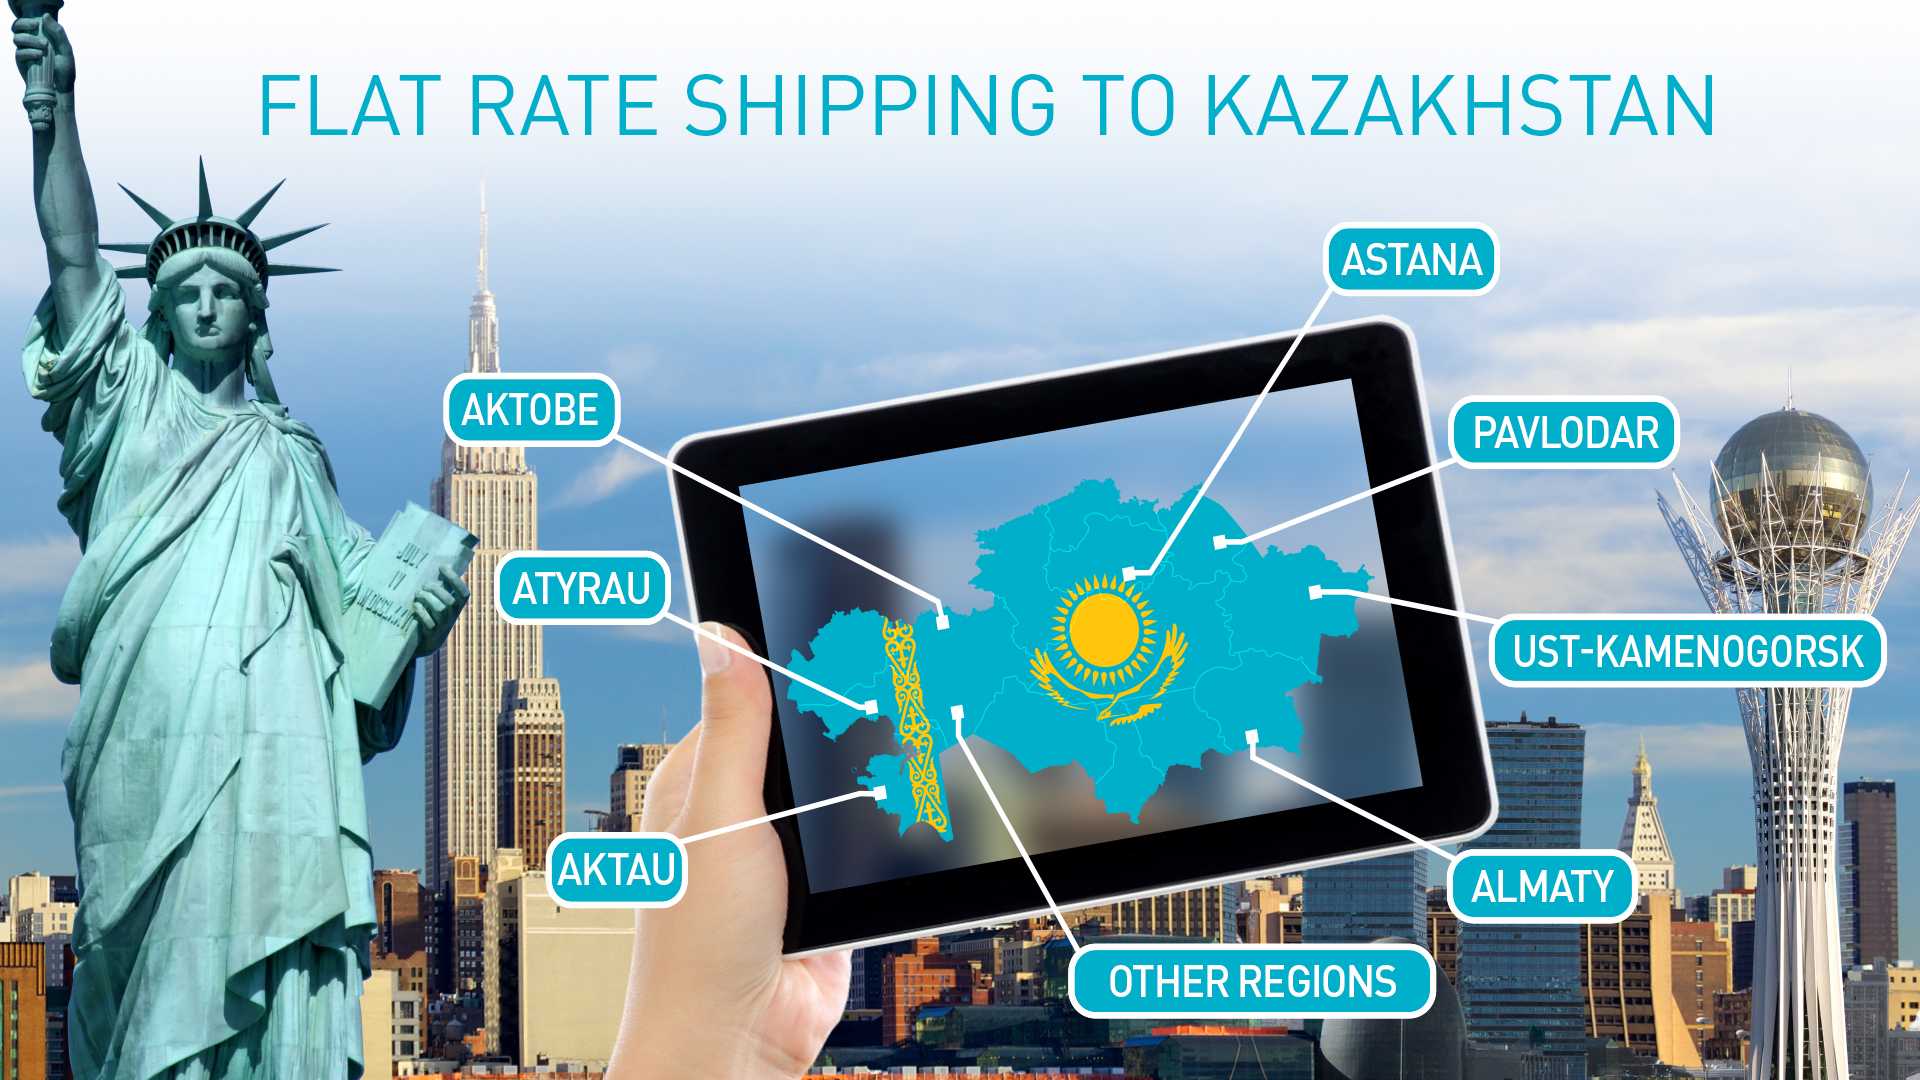 Flat Rate Shipping Now Available for Amazon Prime Products to Kazakhstan